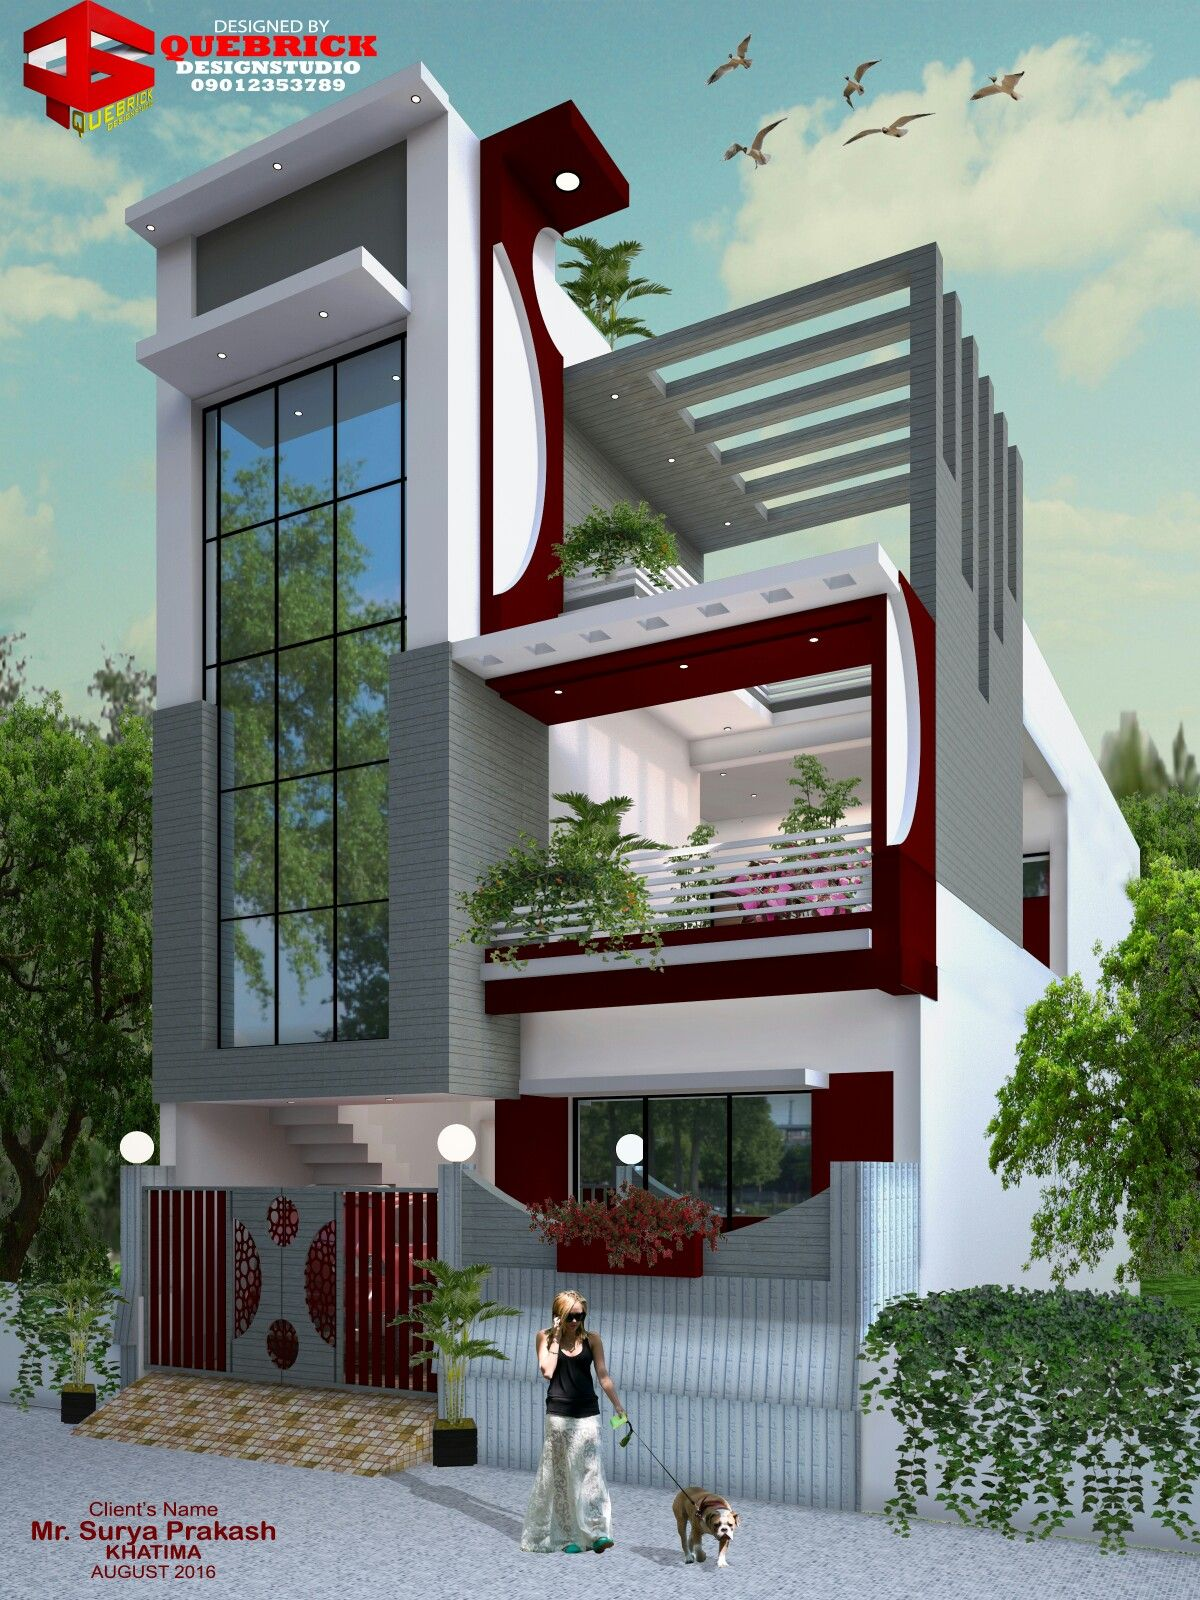 Bungalow house design front cool designs new home also azhar masood engrazharmasood on pinterest rh